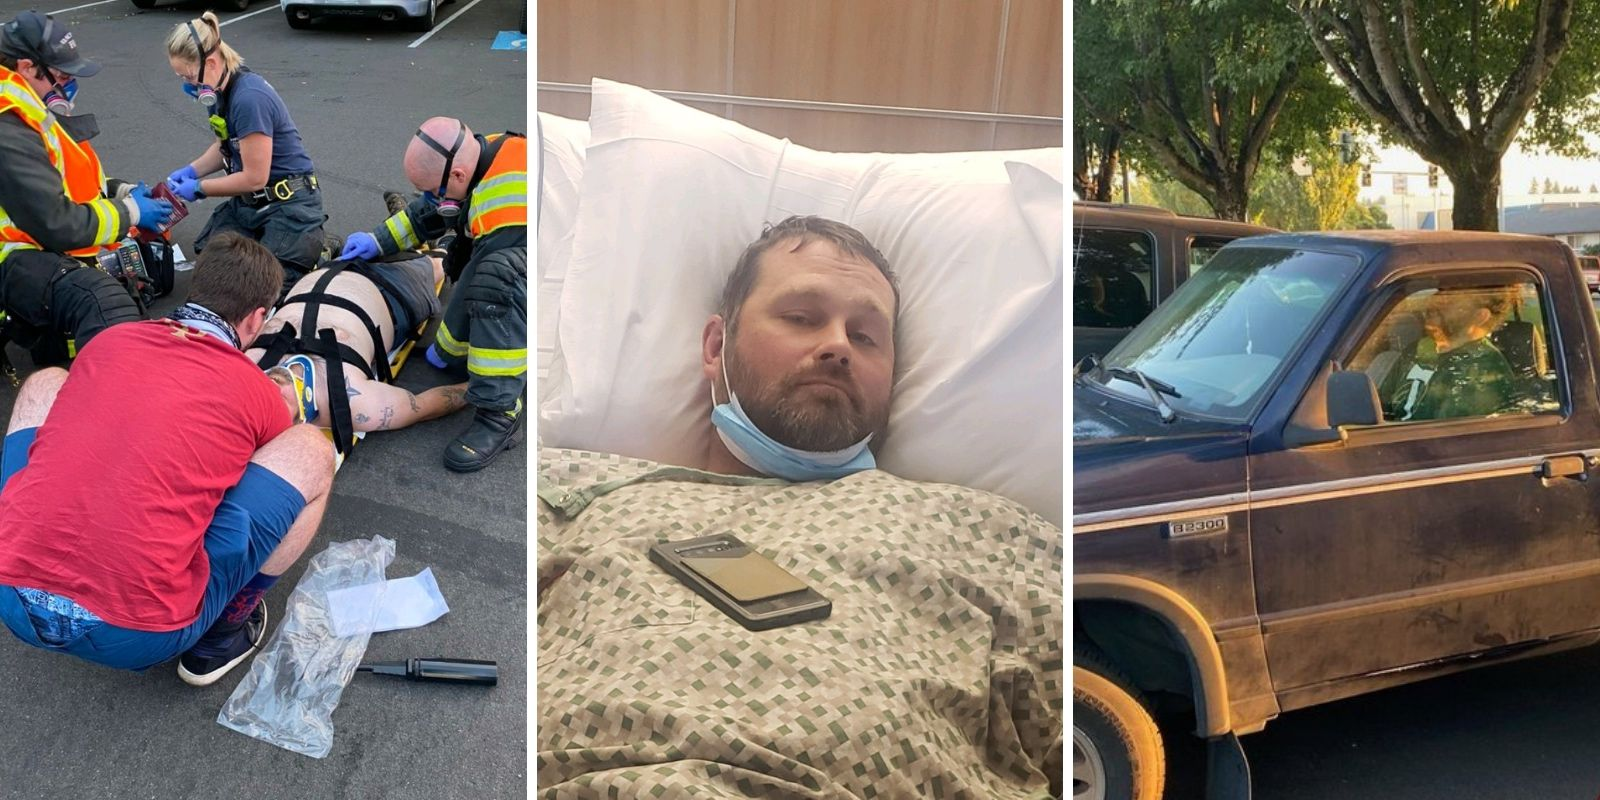 BLM activist arrested for hit-and-run that seriously injured a right-wing group member